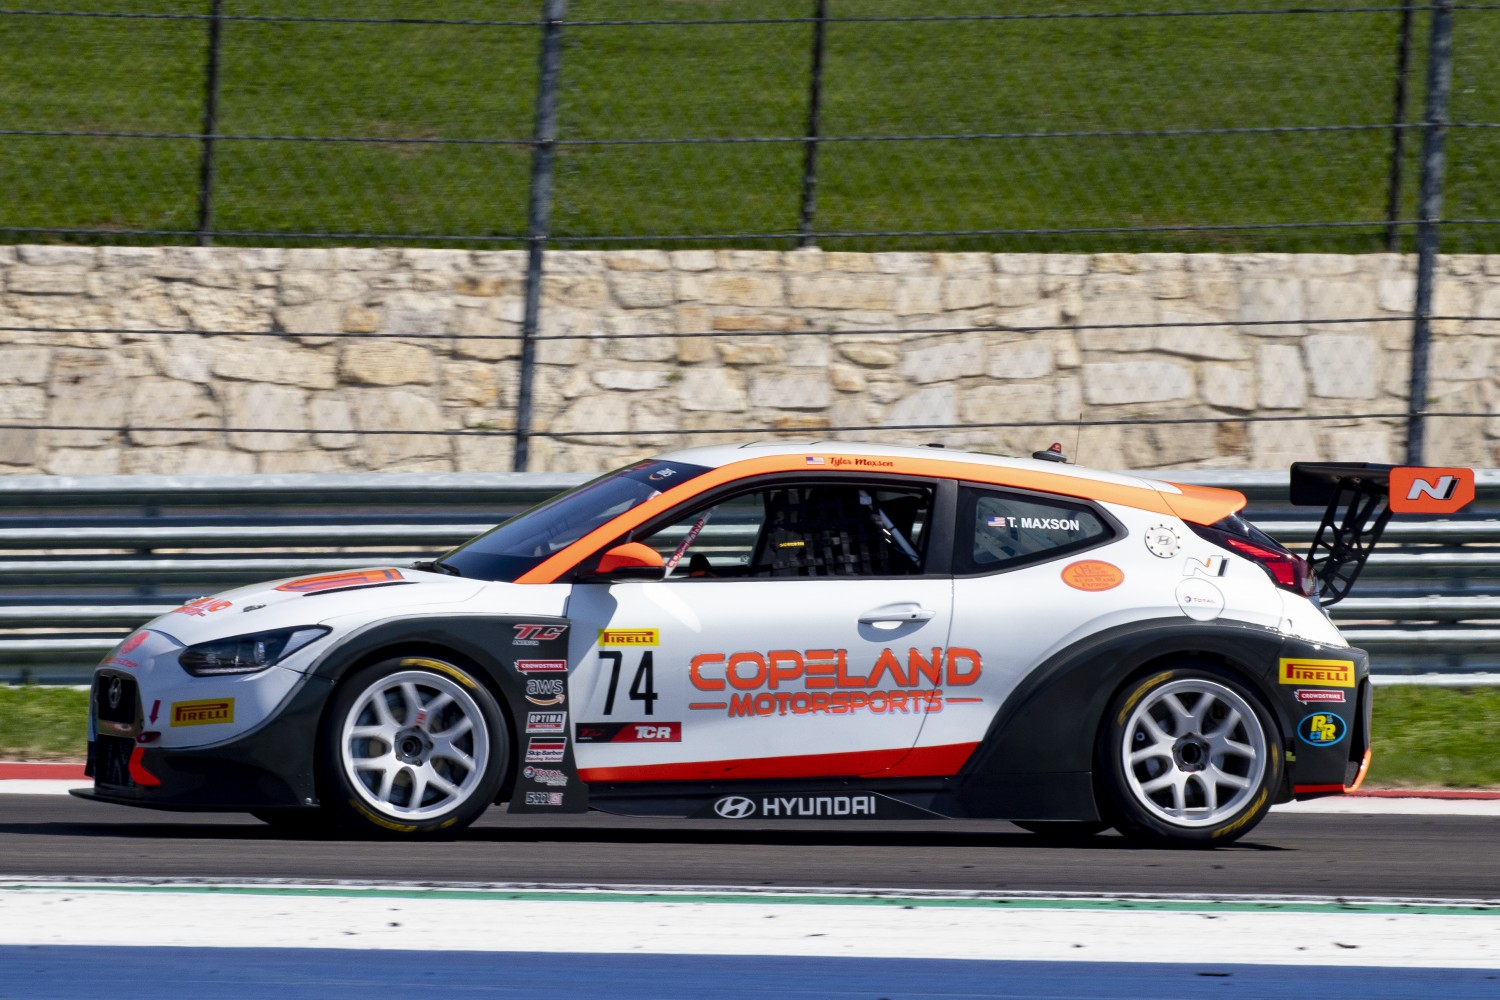 Maxson on top in TC America TCR Practice Session 1 at COTA; Hull in TC; Gonzalez in TCA